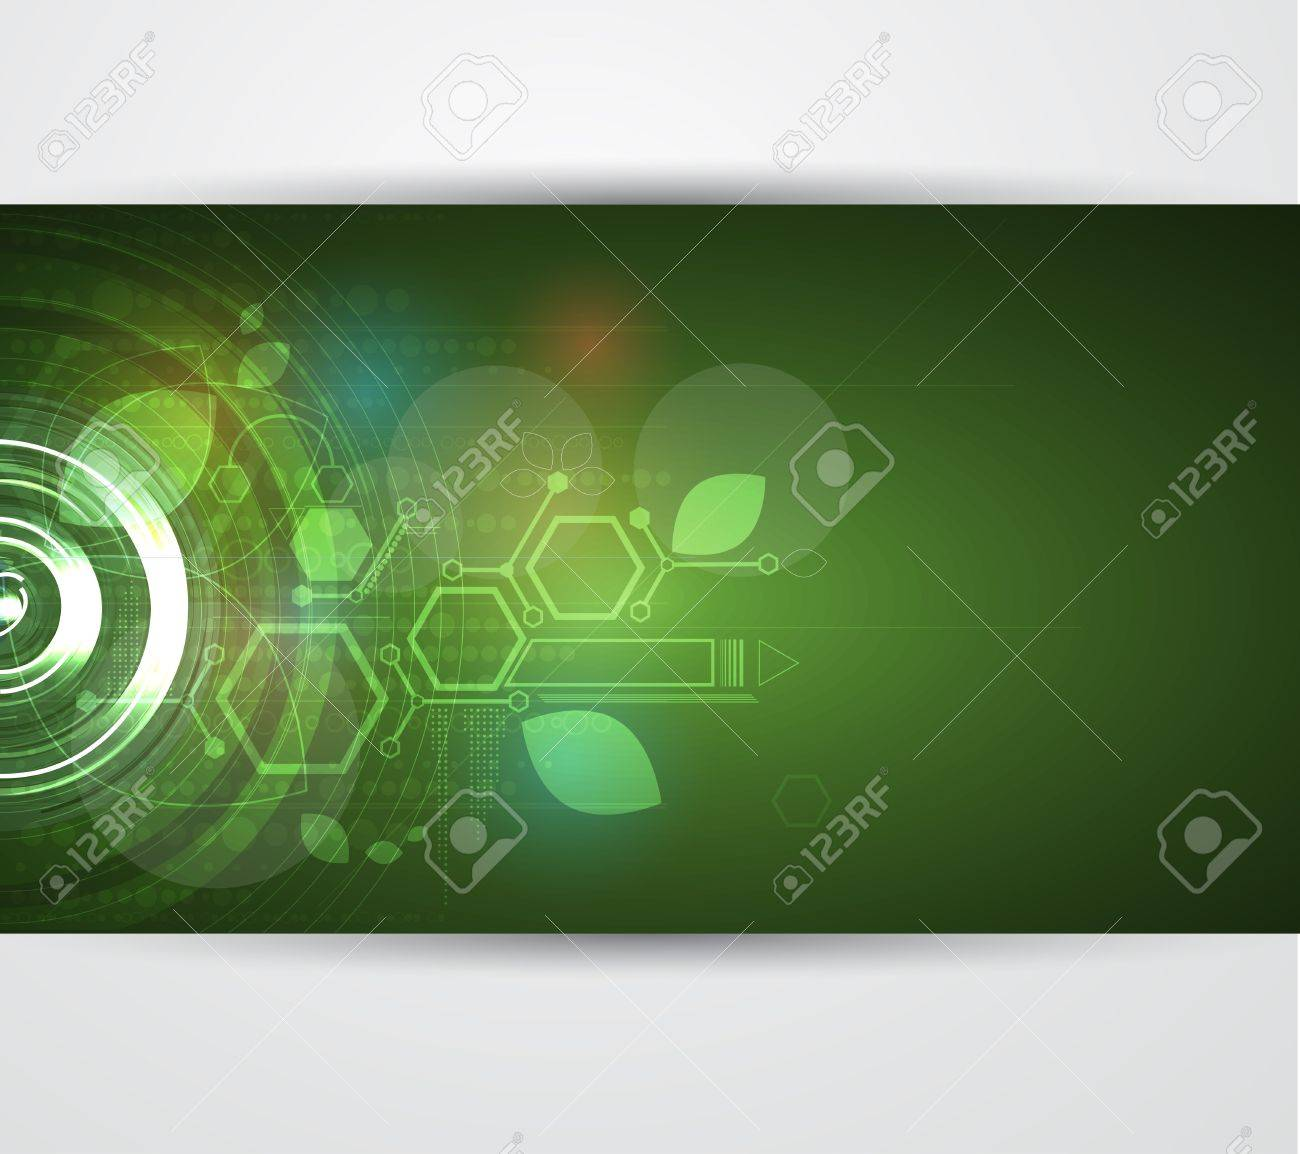 abstract green ecology computer technology business background Stock Vector - 17468252